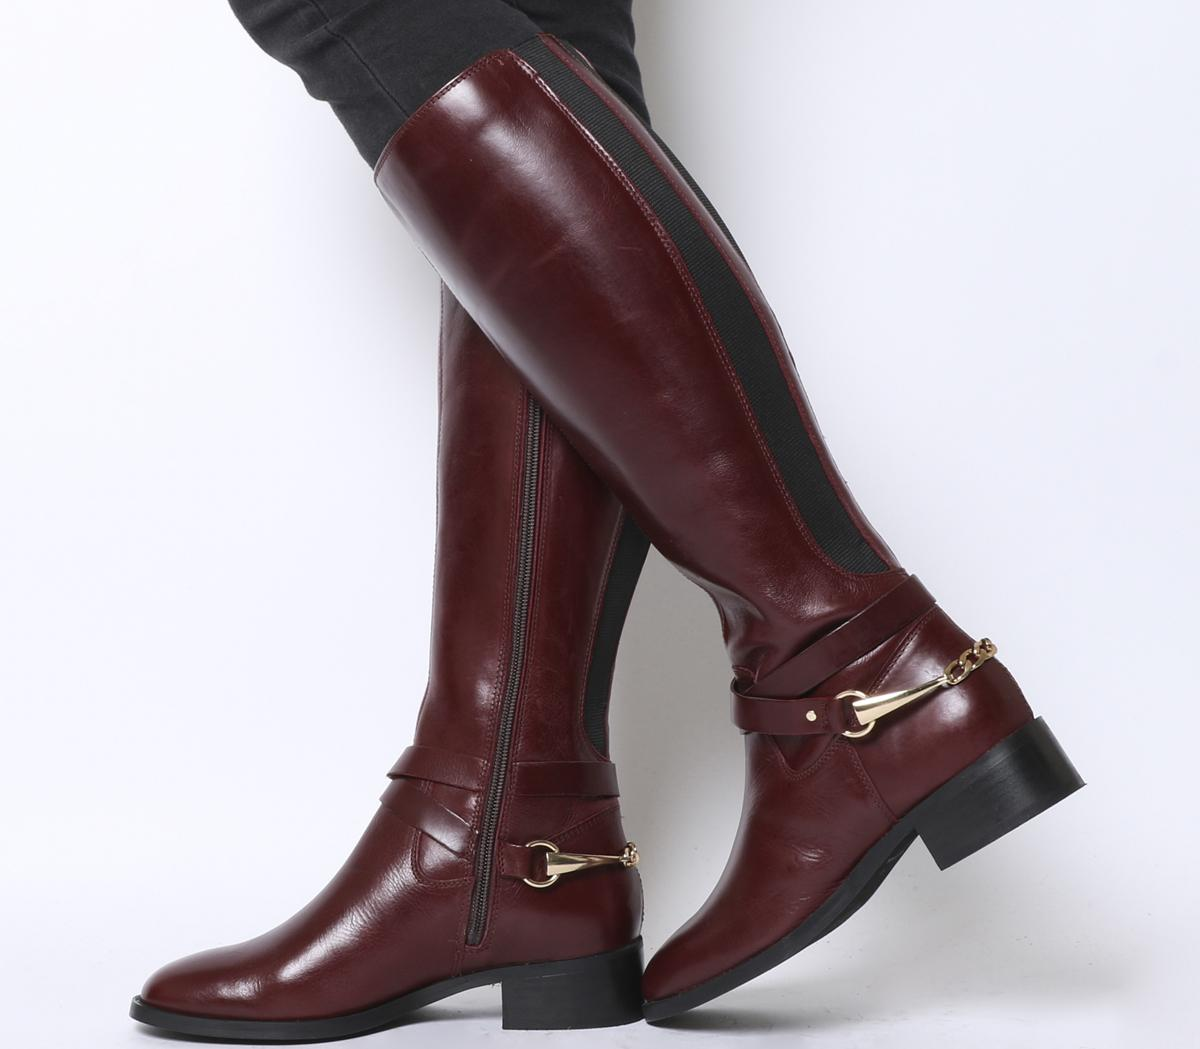 611c4b8b499fe4 Details about Womens Converse Burgundy Leather Zip Knee High Boots Size UK  6  Ex-Display